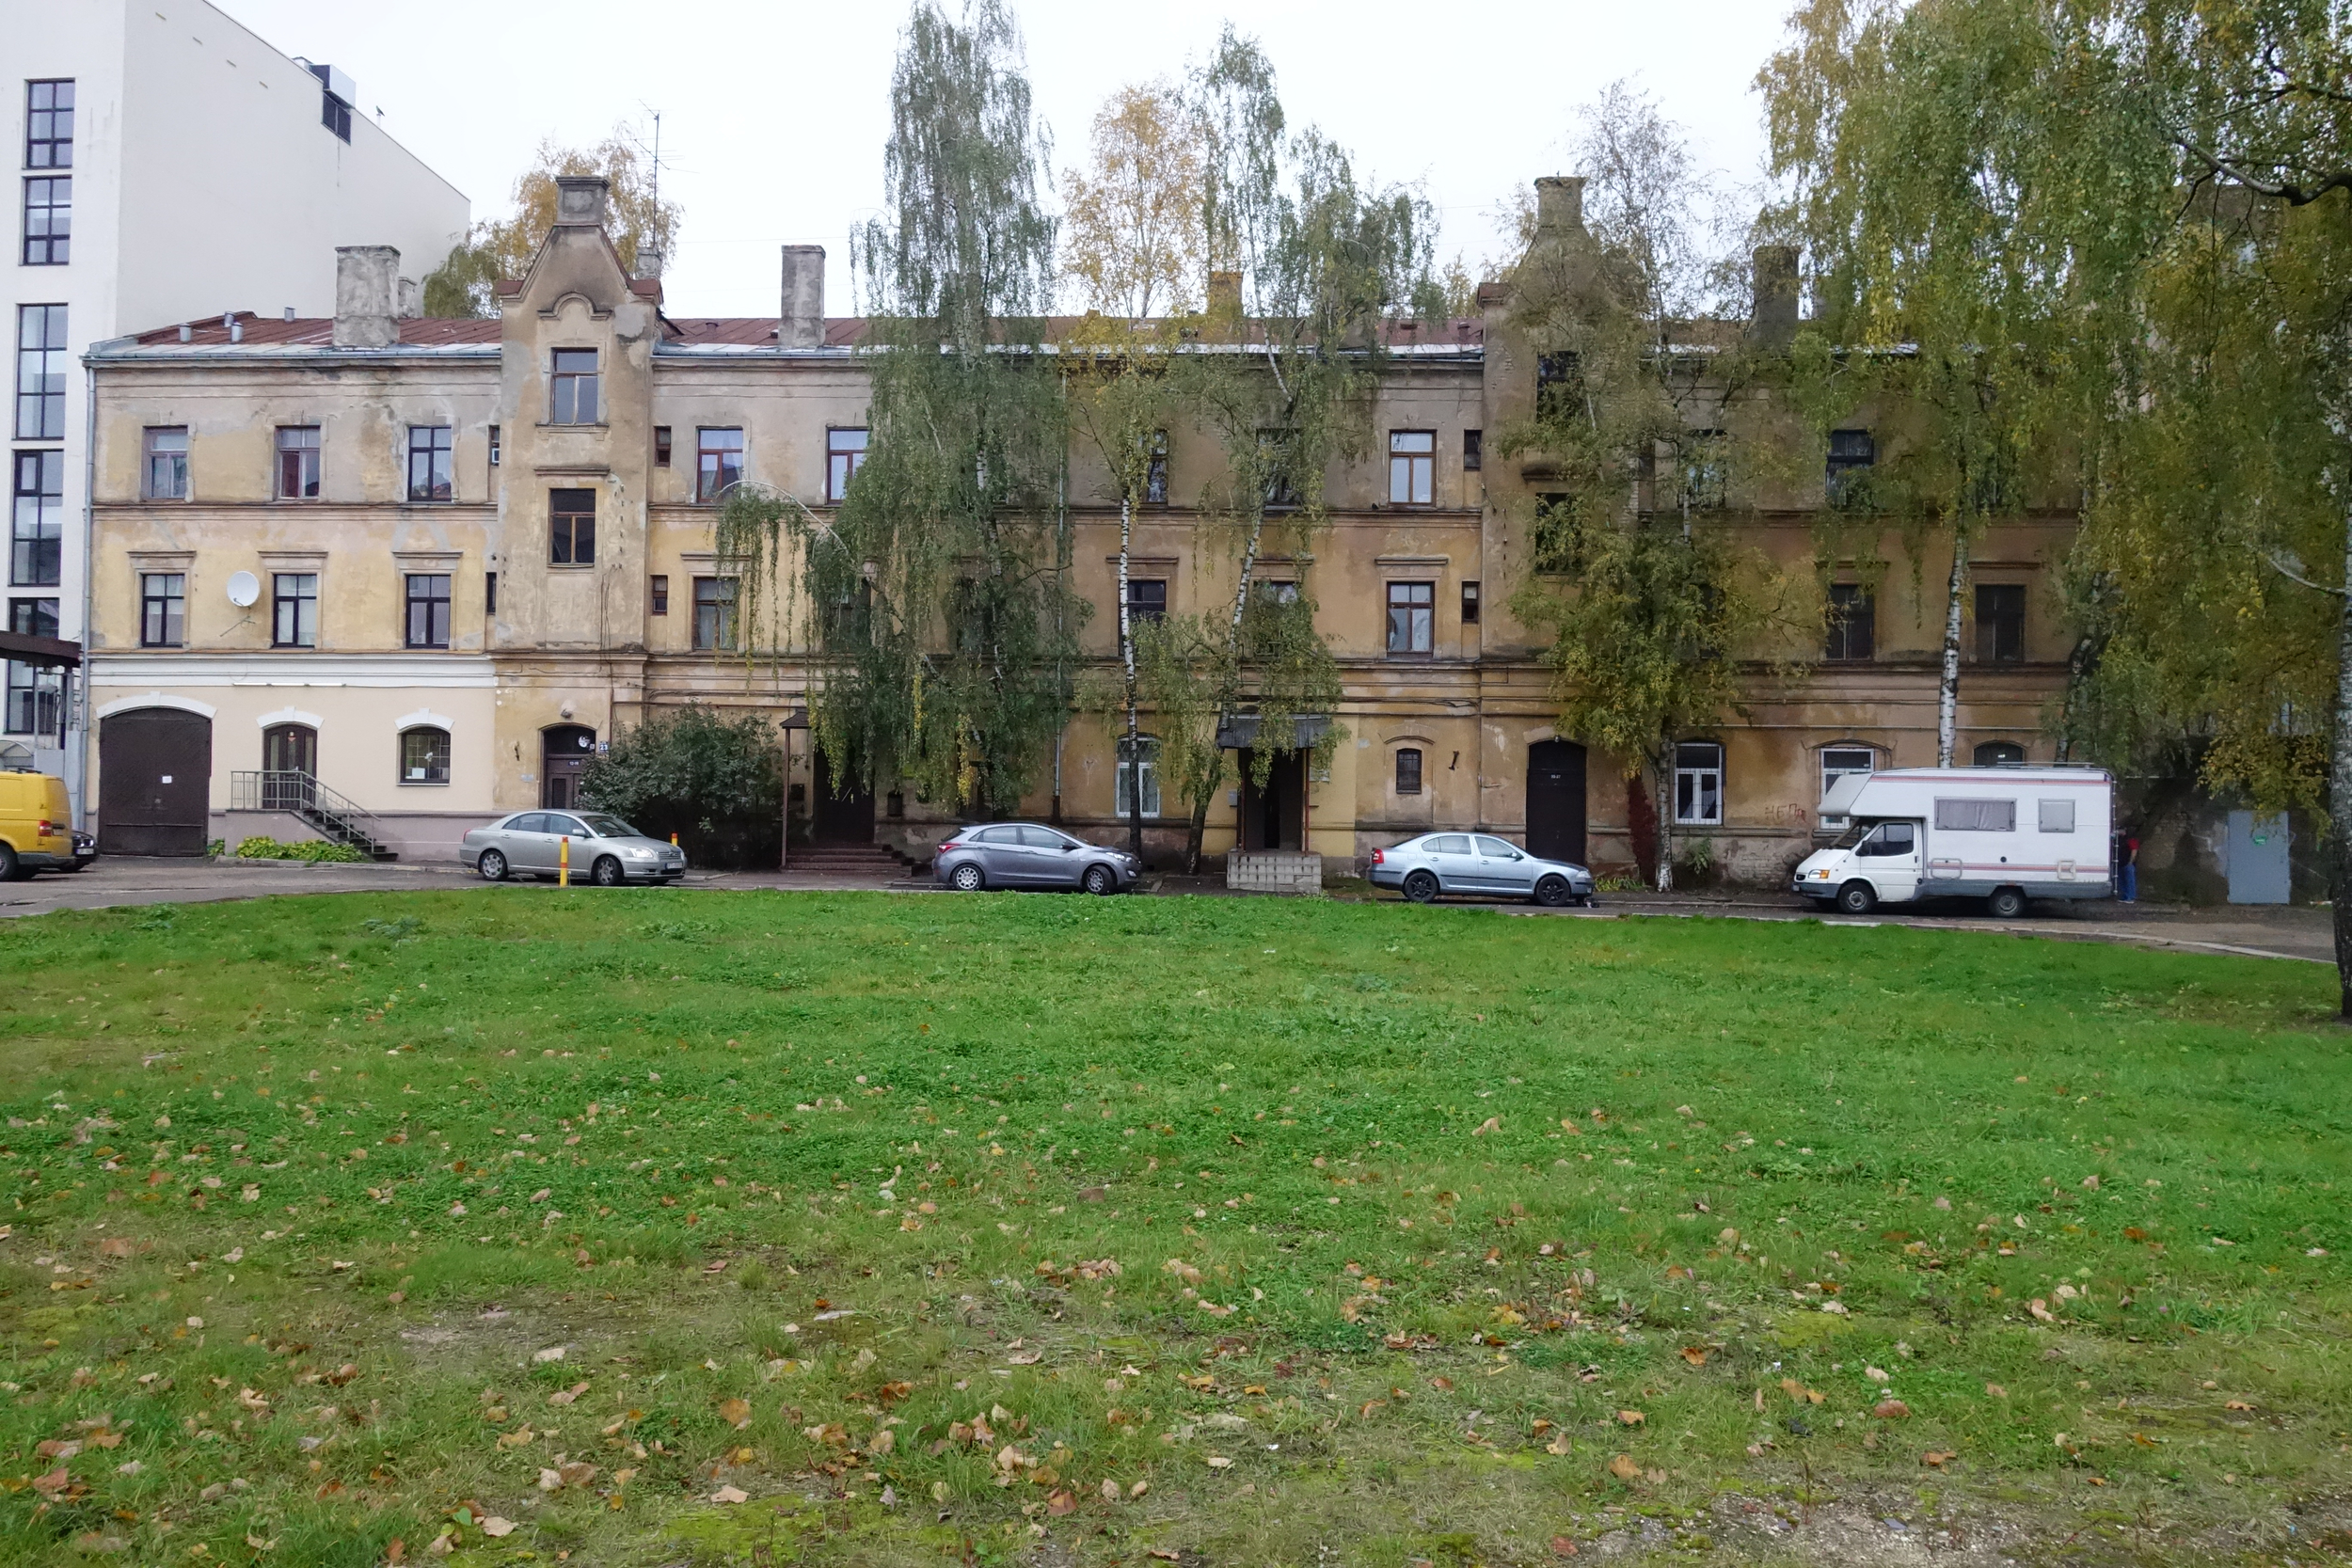 First photo taken during the first trip; a typical apartment block in Riga, Latvia.